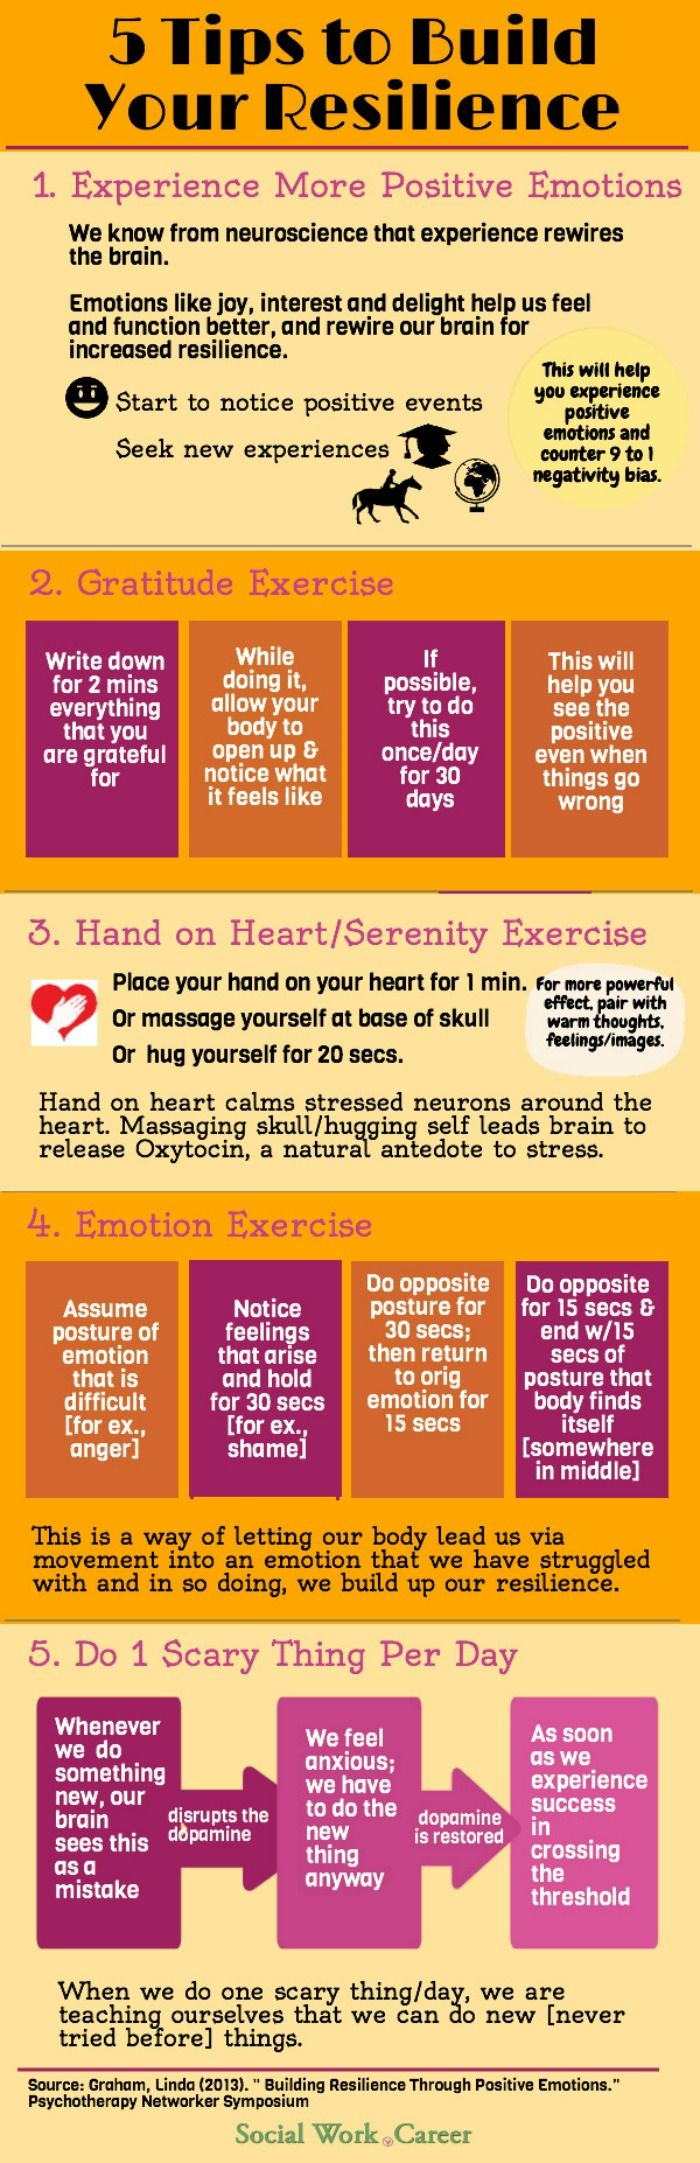 """Would you like to find out 5 easy ways to build up your resiliency? Resilience is a critical skill for us all.As per Linda Graham, MFT,resilience refers to """"the capacity to respond to pressures and tragedies quickly, adaptively and effectively."""" Furthermore, """"being able to adapt our coping to a specific challenge is the skill that …"""